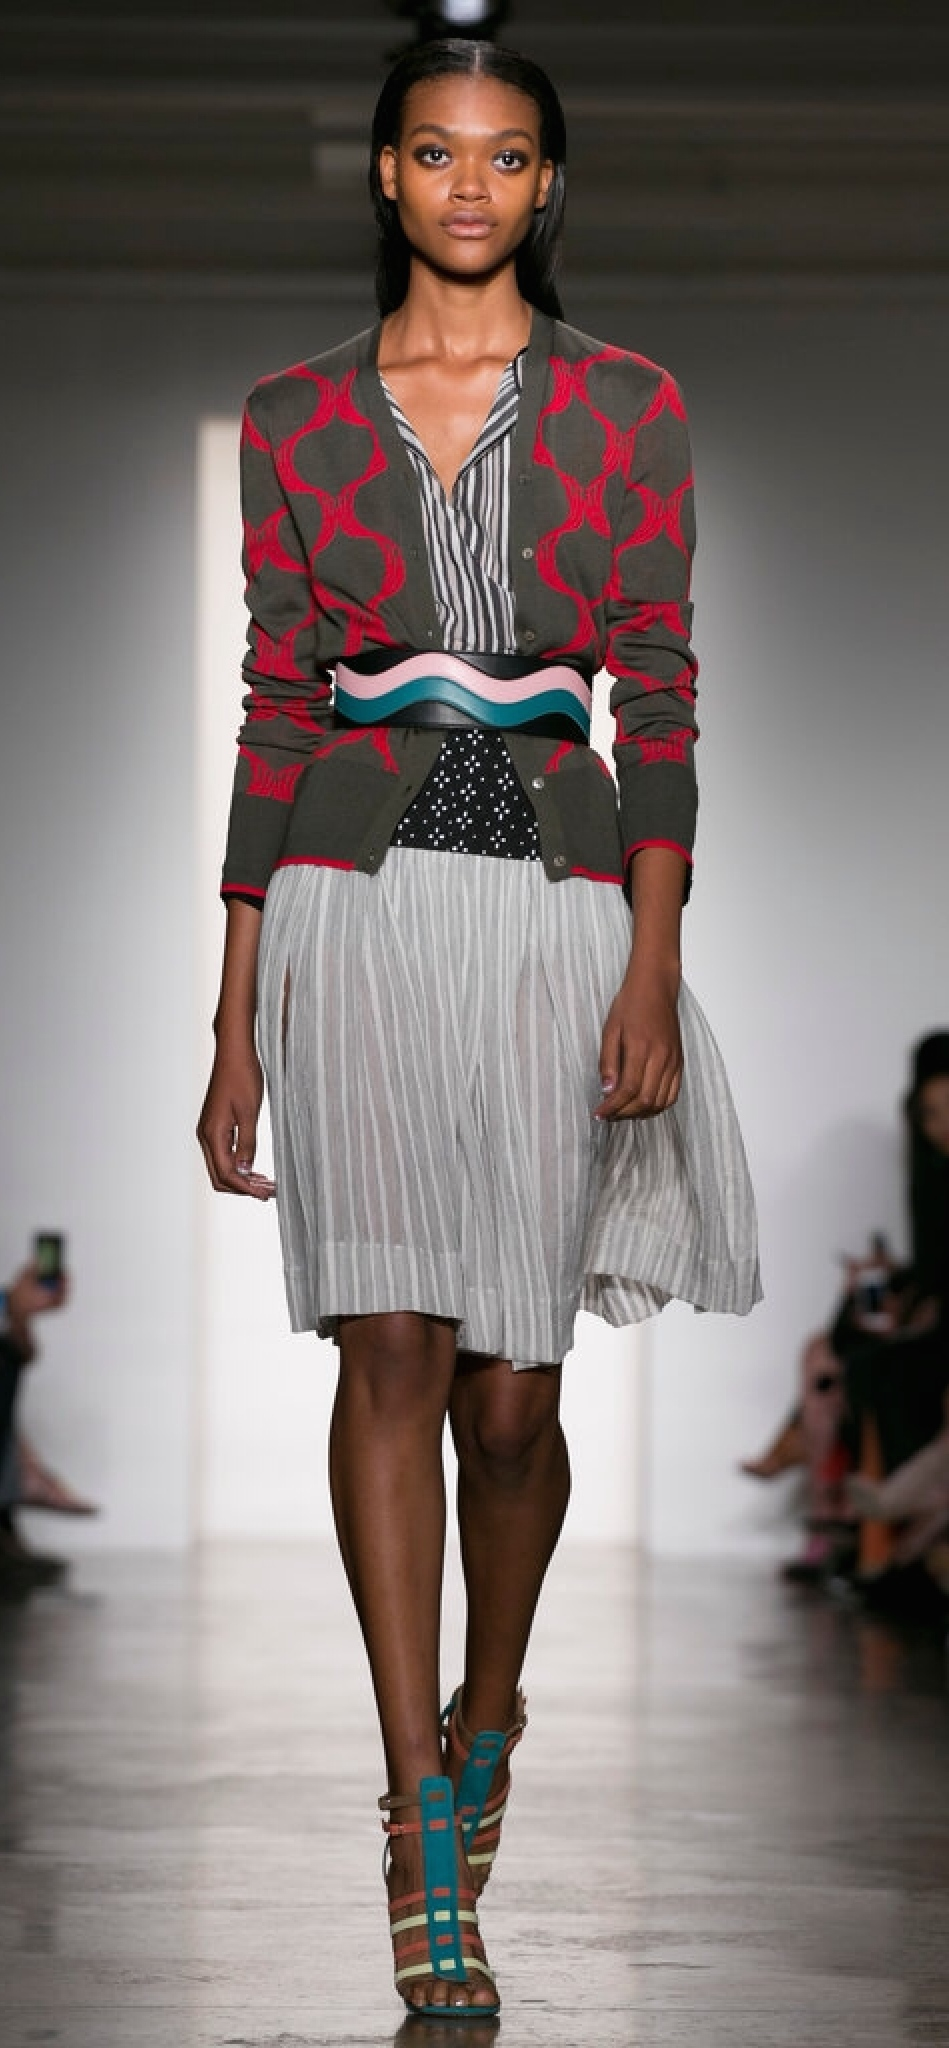 Sophie Theallet used a lightweight patterned fabric to give the illusion of transparency.